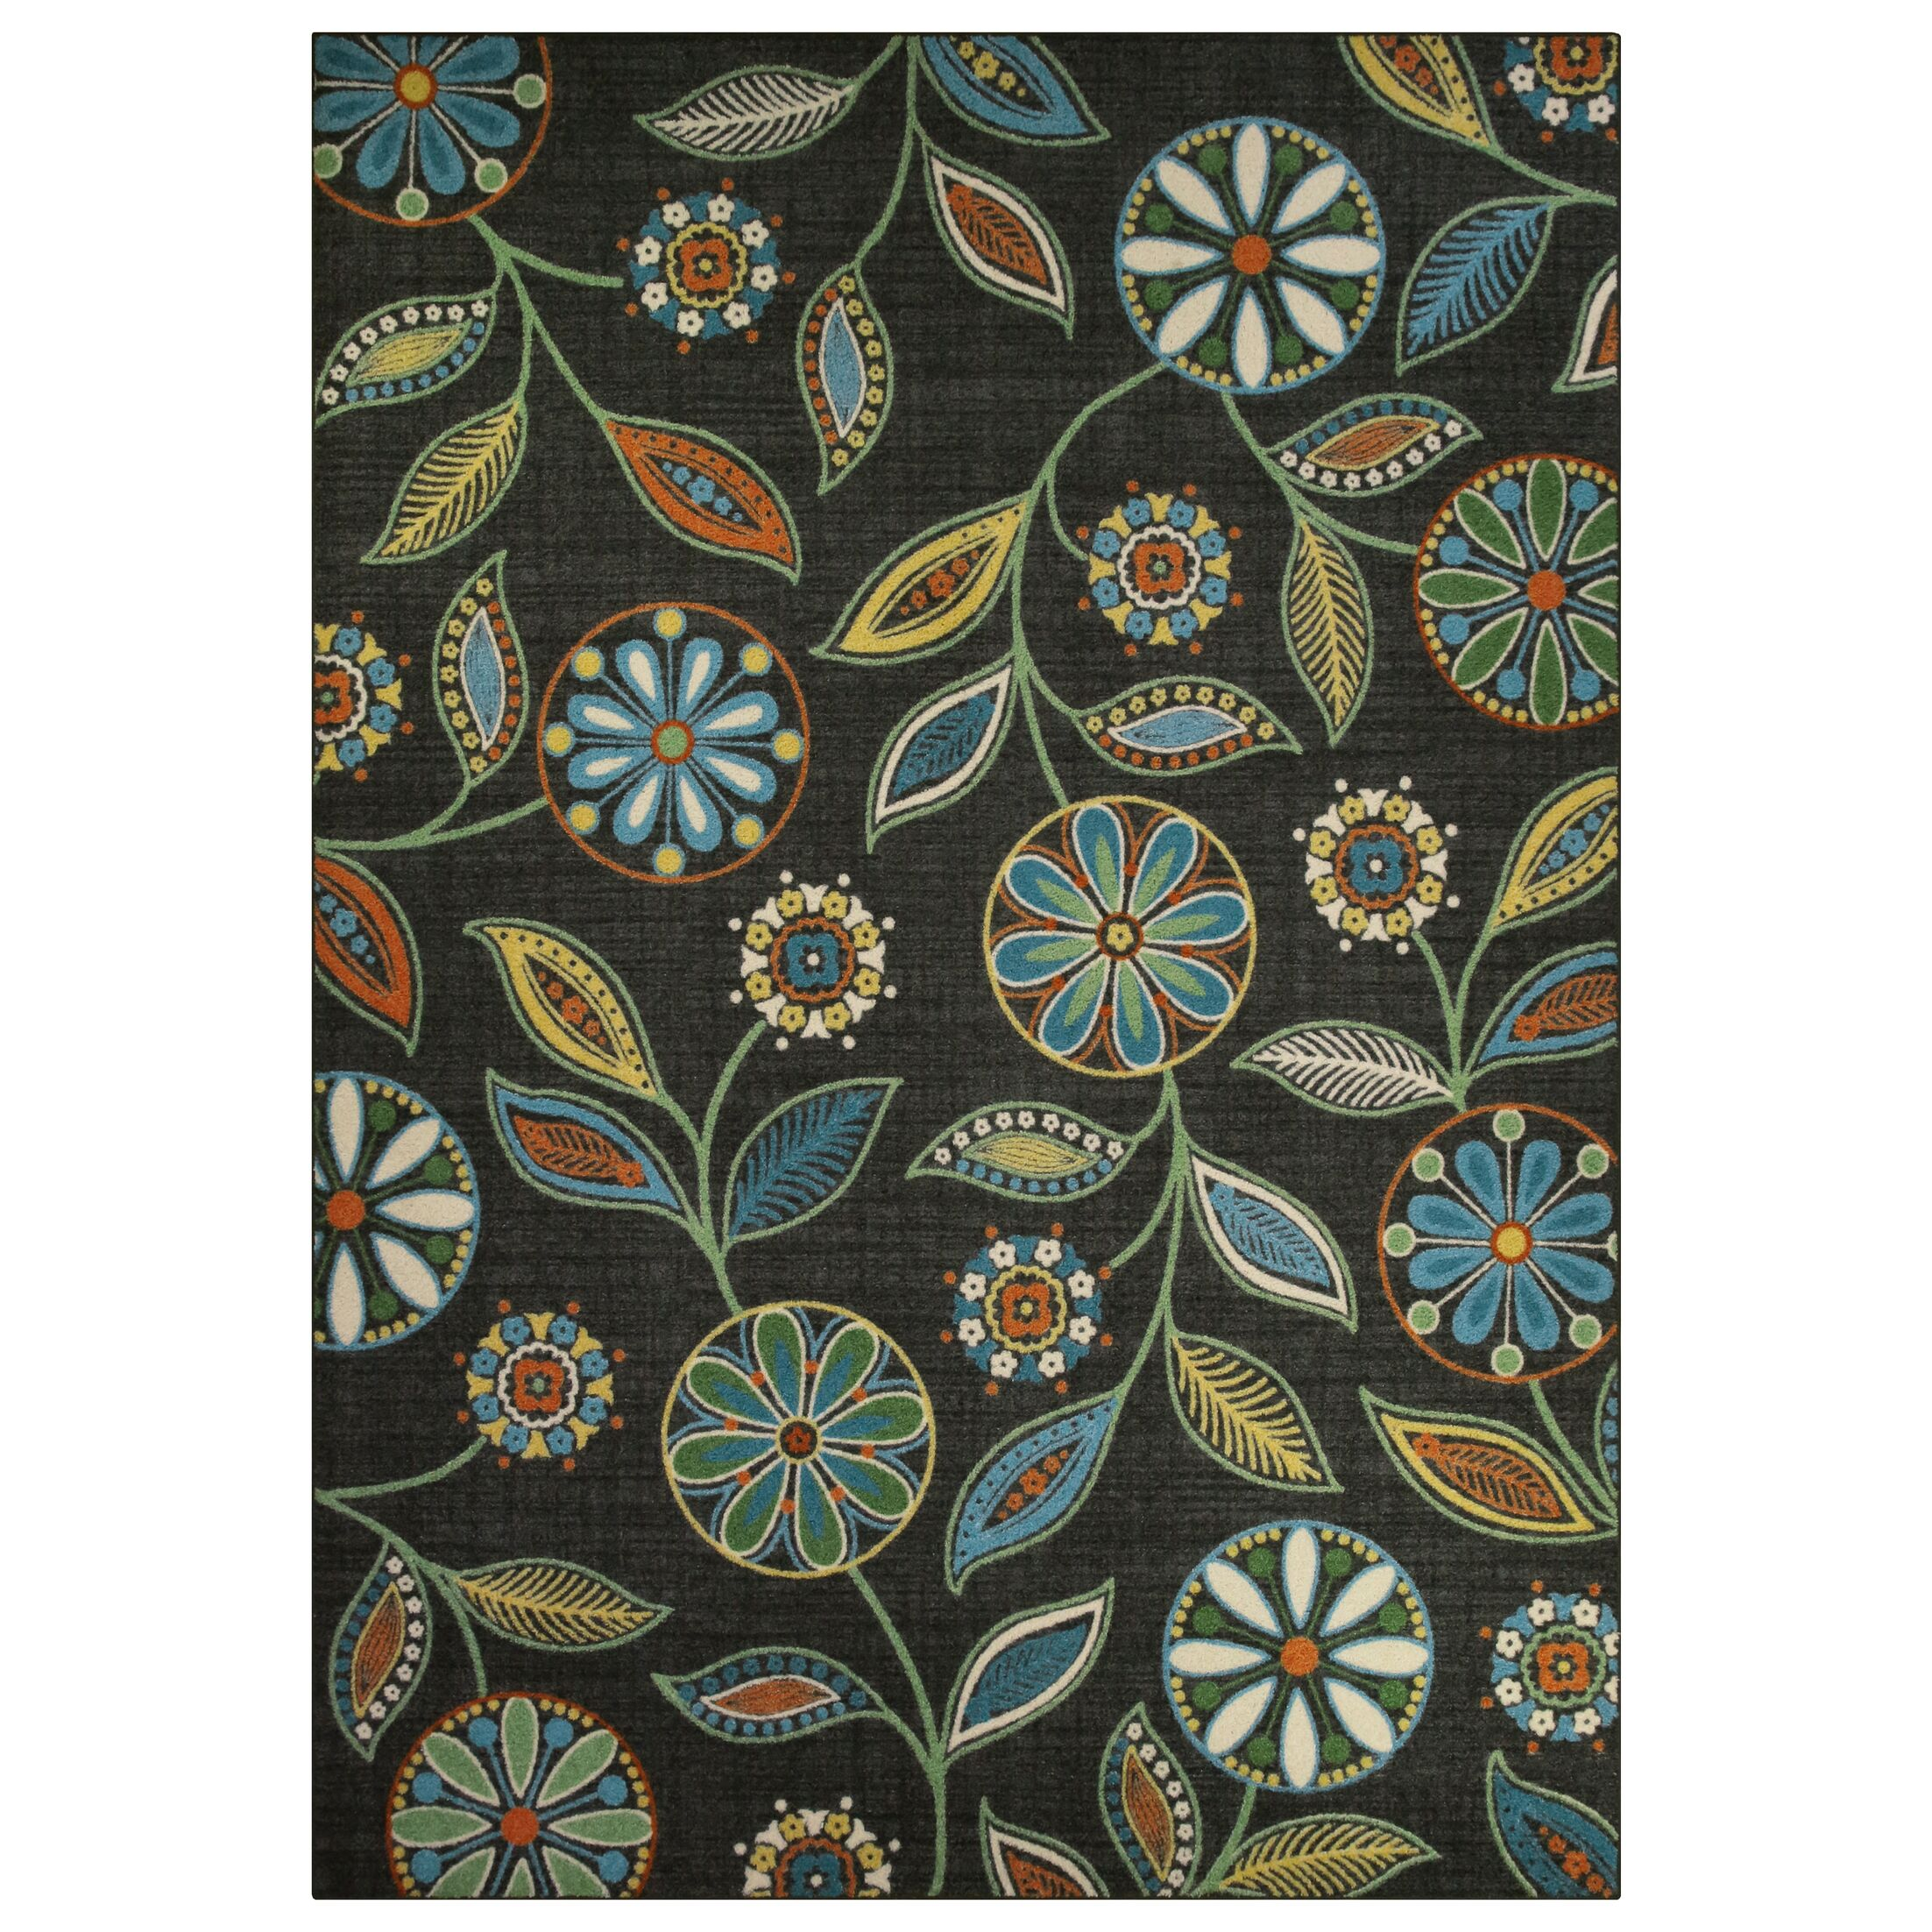 Adderley Radiant Gray/Stone Green Area rug Rug Size: 7' x 10'